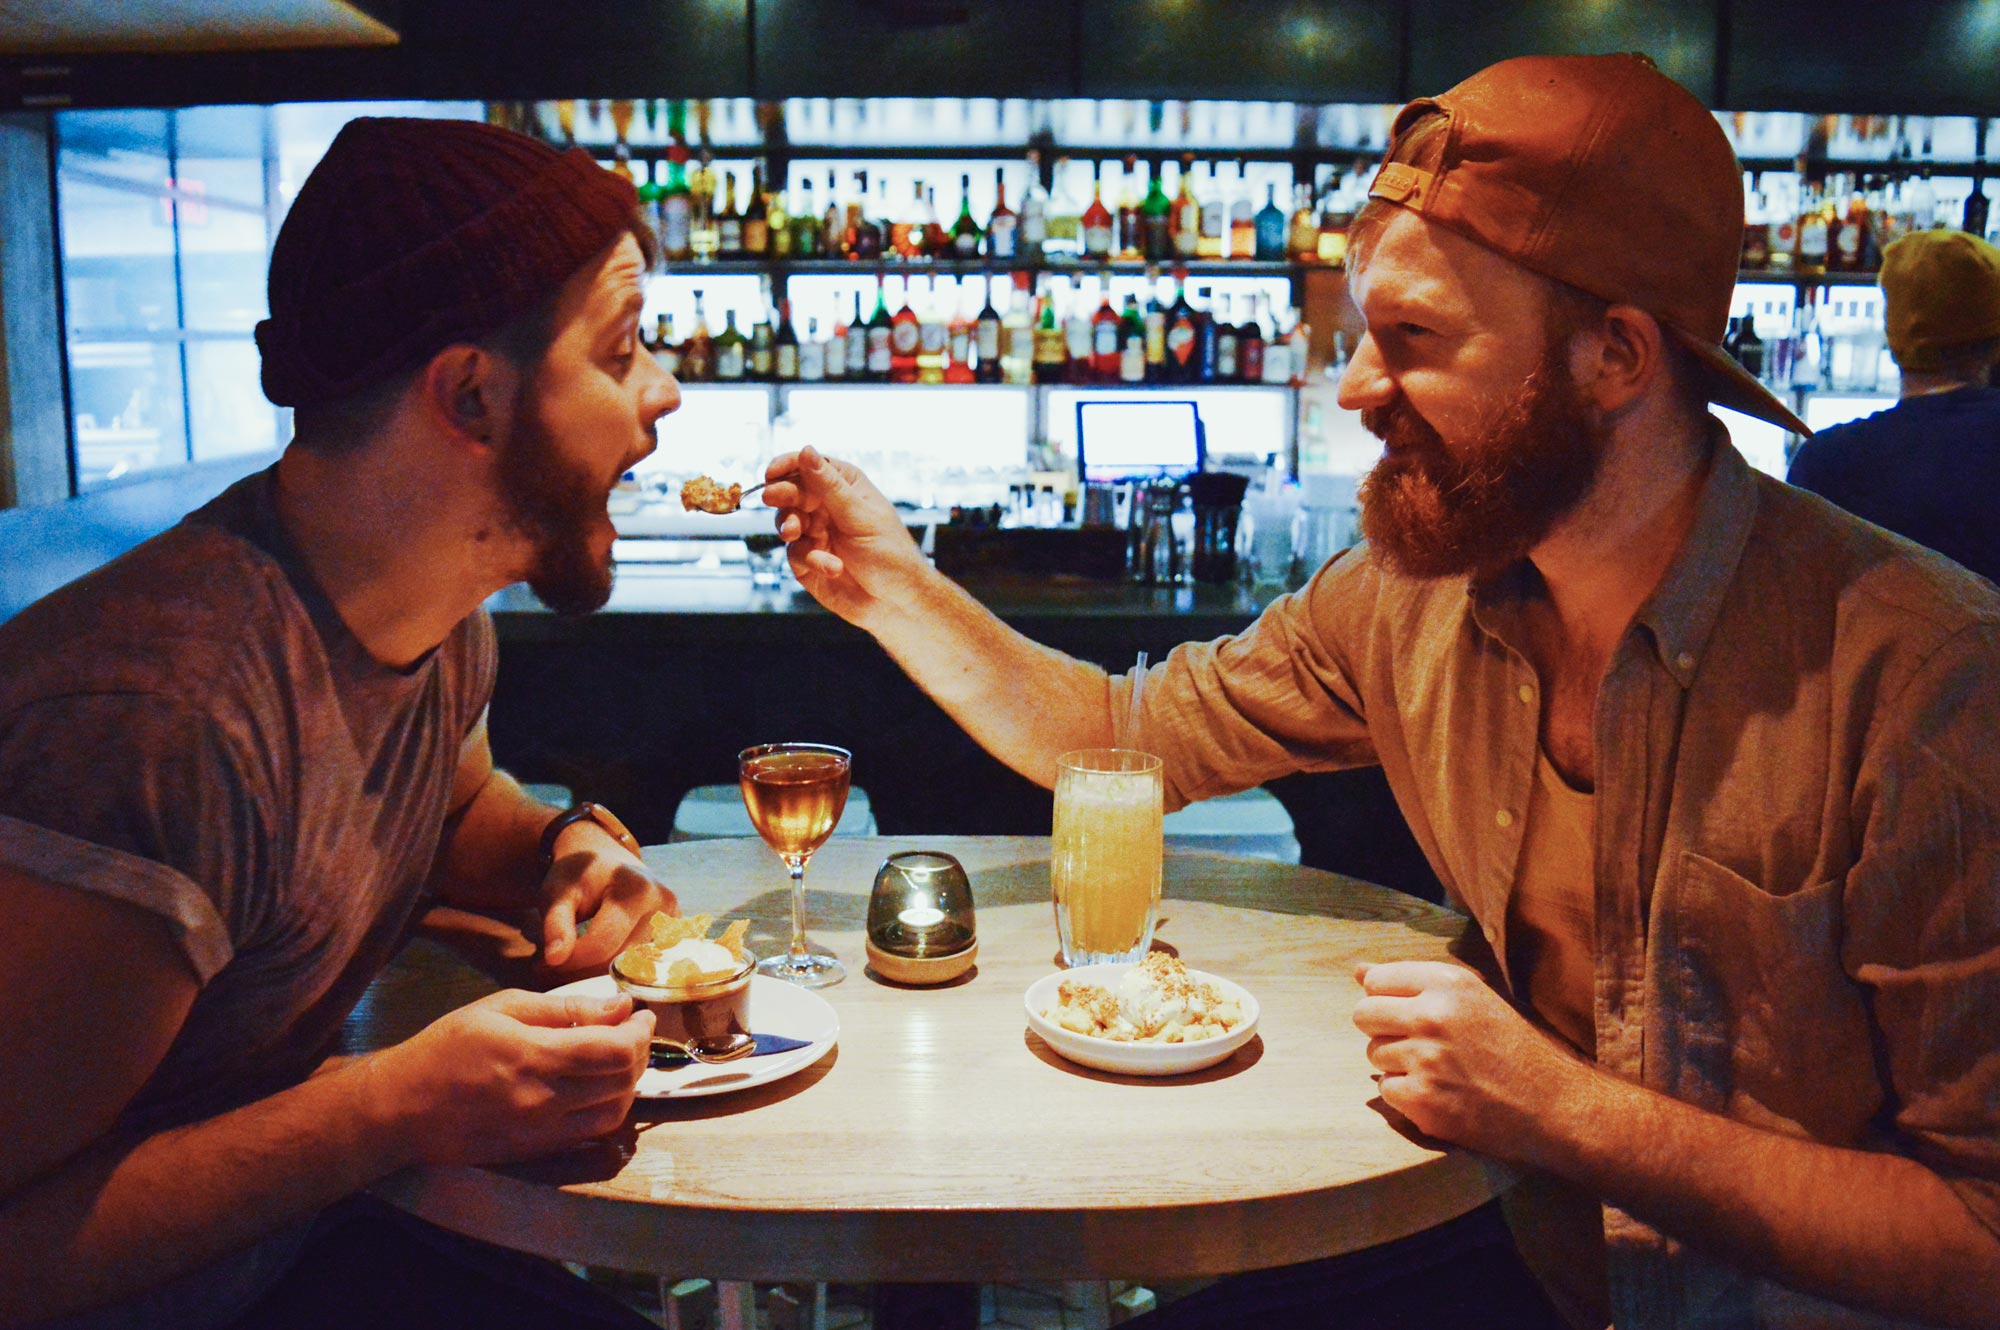 Schwulenfreundliche Restaurants Vancouver Top 10 awesome & gay-friendly Restaurants Vancouver, BC © CoupleofMen.com